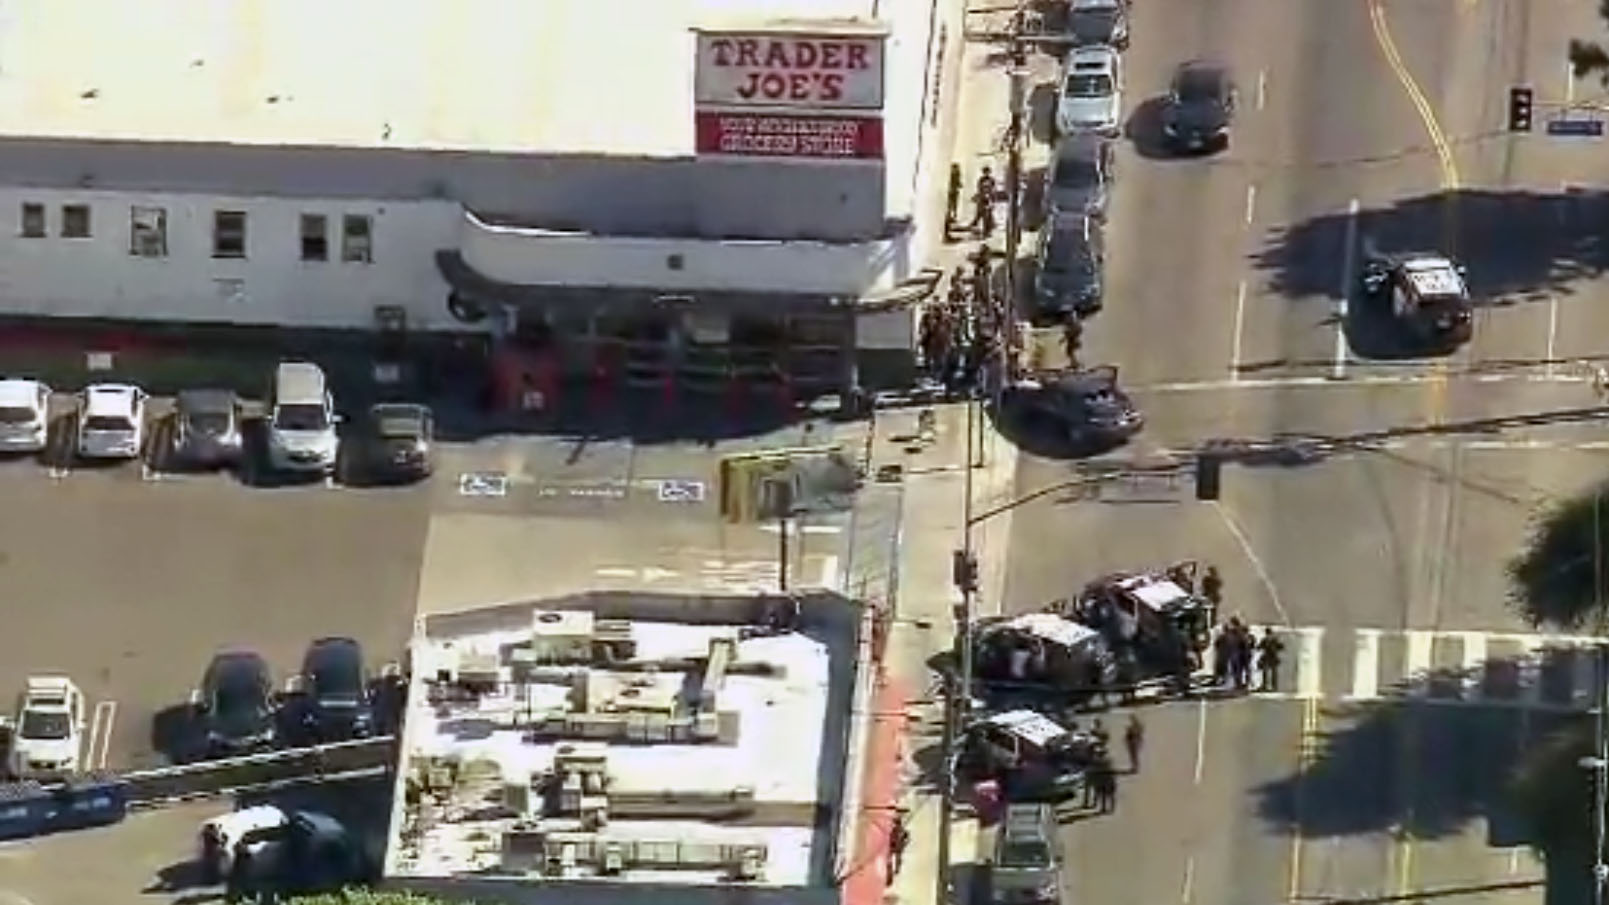 Woman Killed In LA Trader Joe's Standoff Was Store Manager